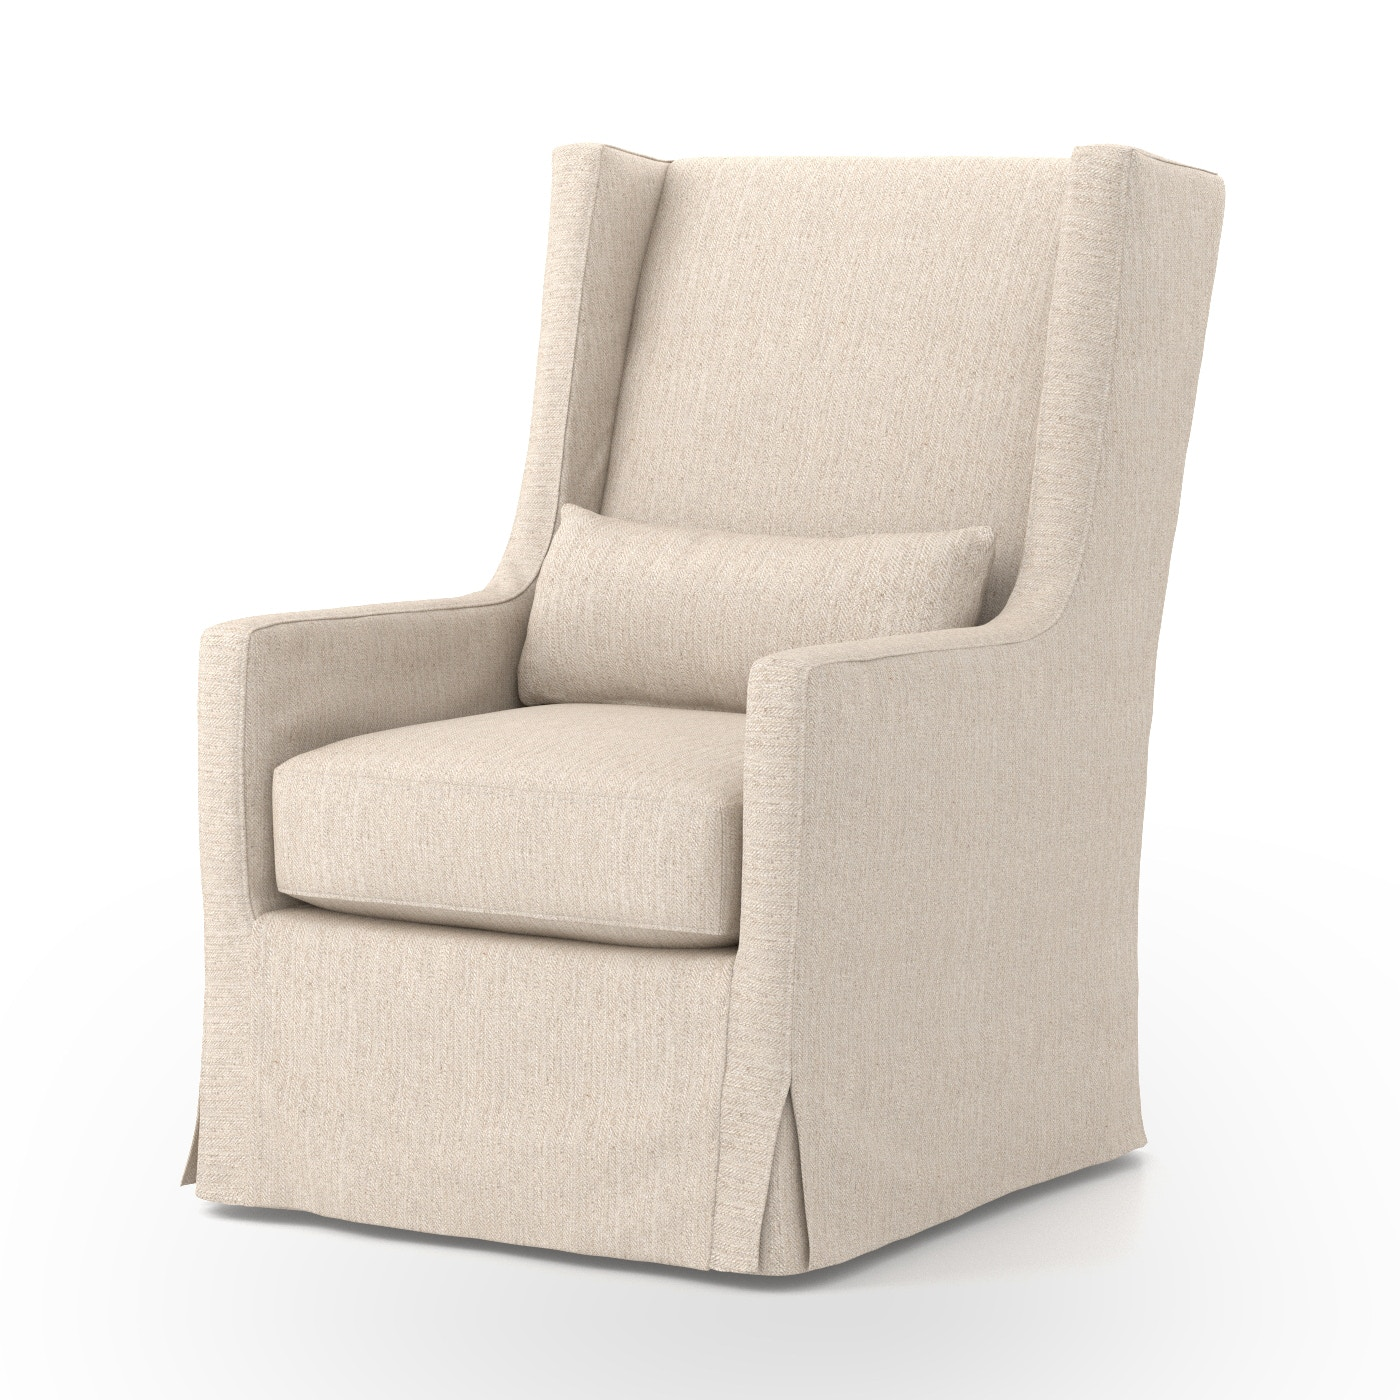 Four Hands Furniture Swivel Wing Chair Jette Linen CKEN C2 362